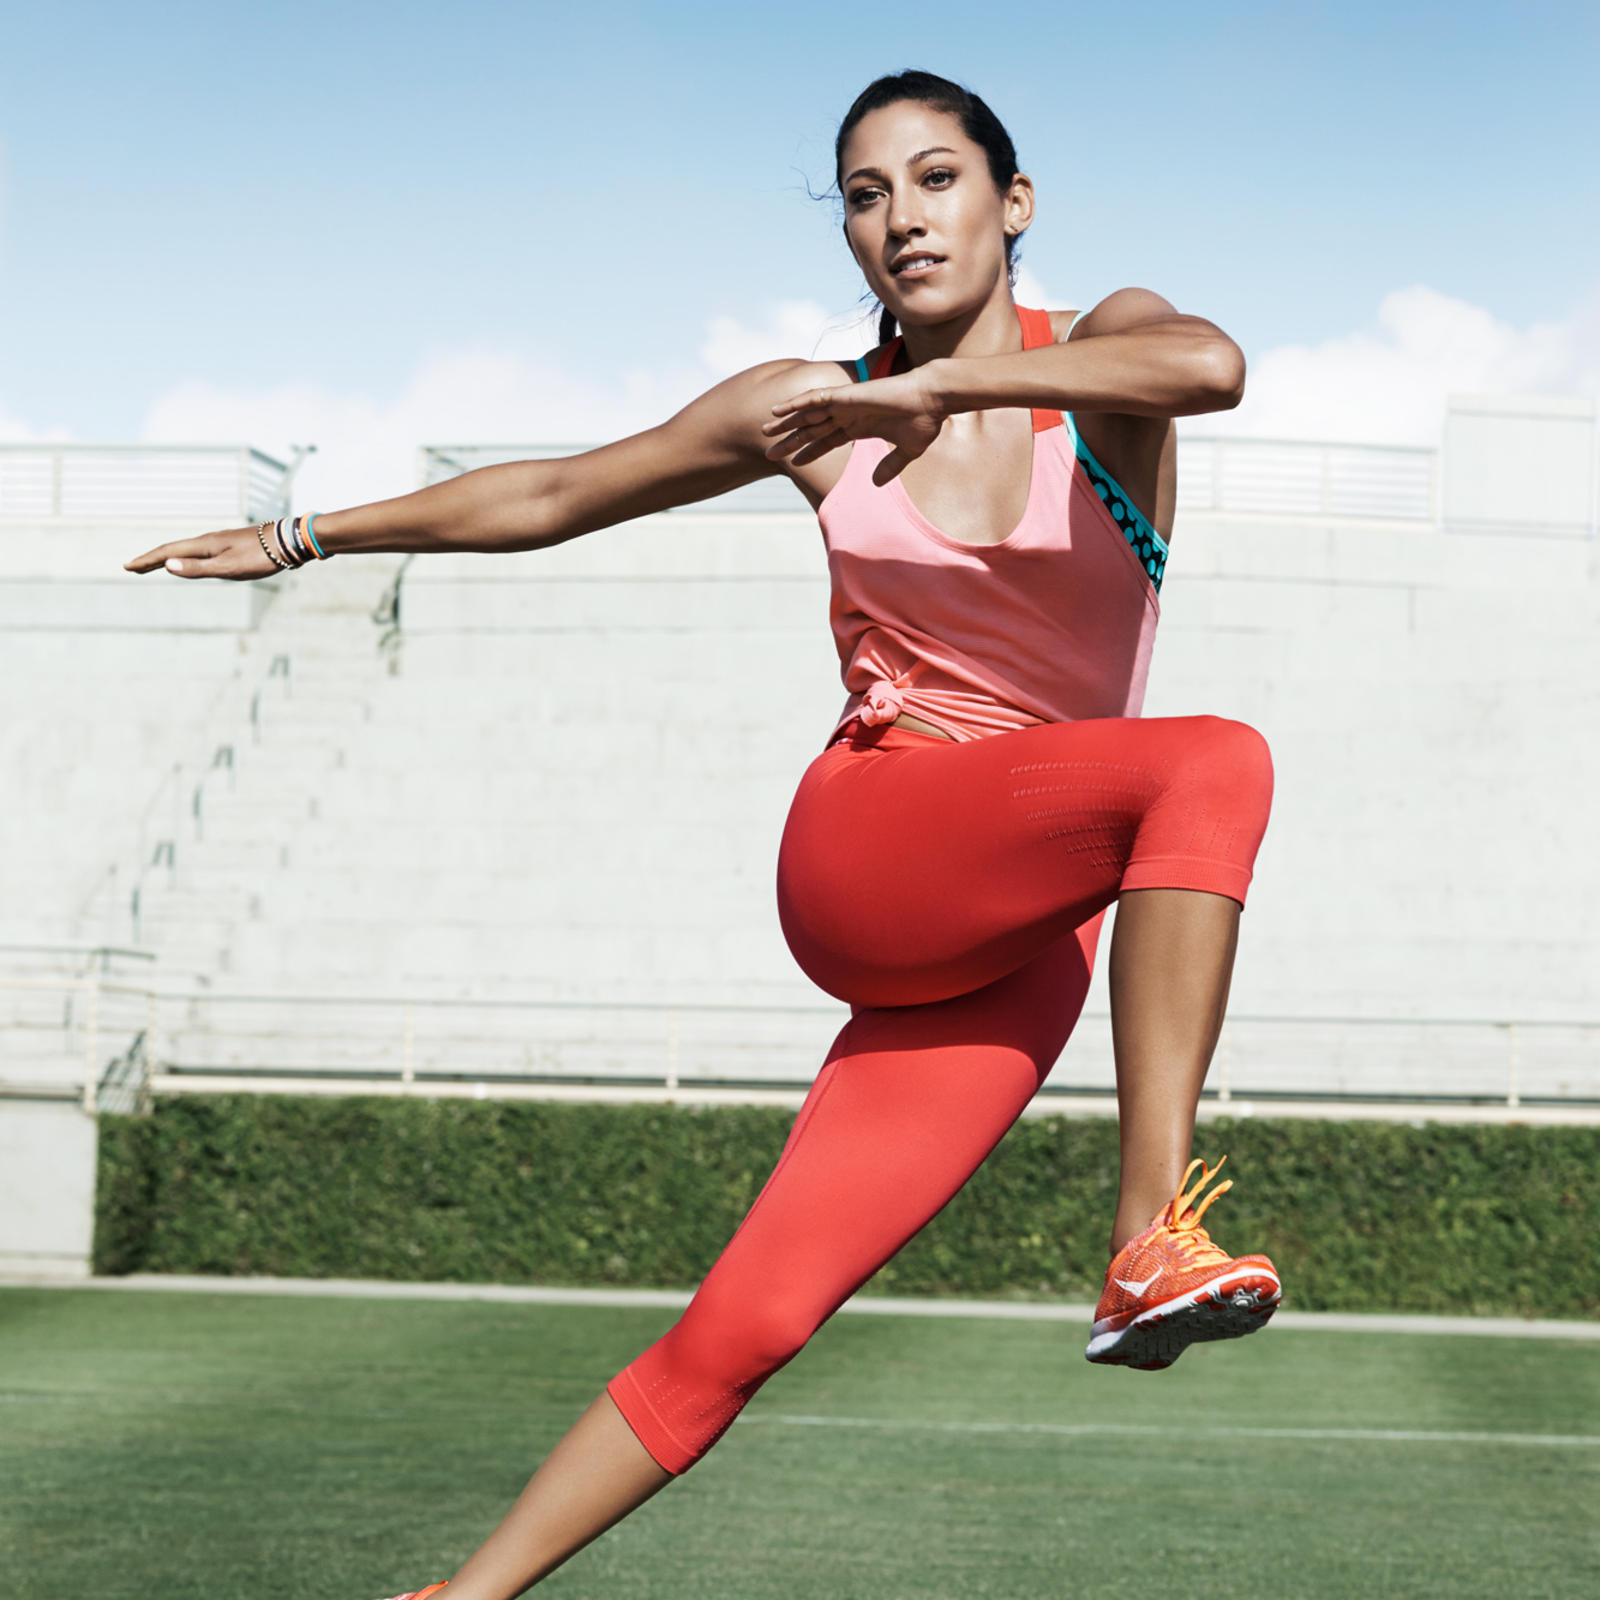 Nike_Women_Christen_Press_Square2